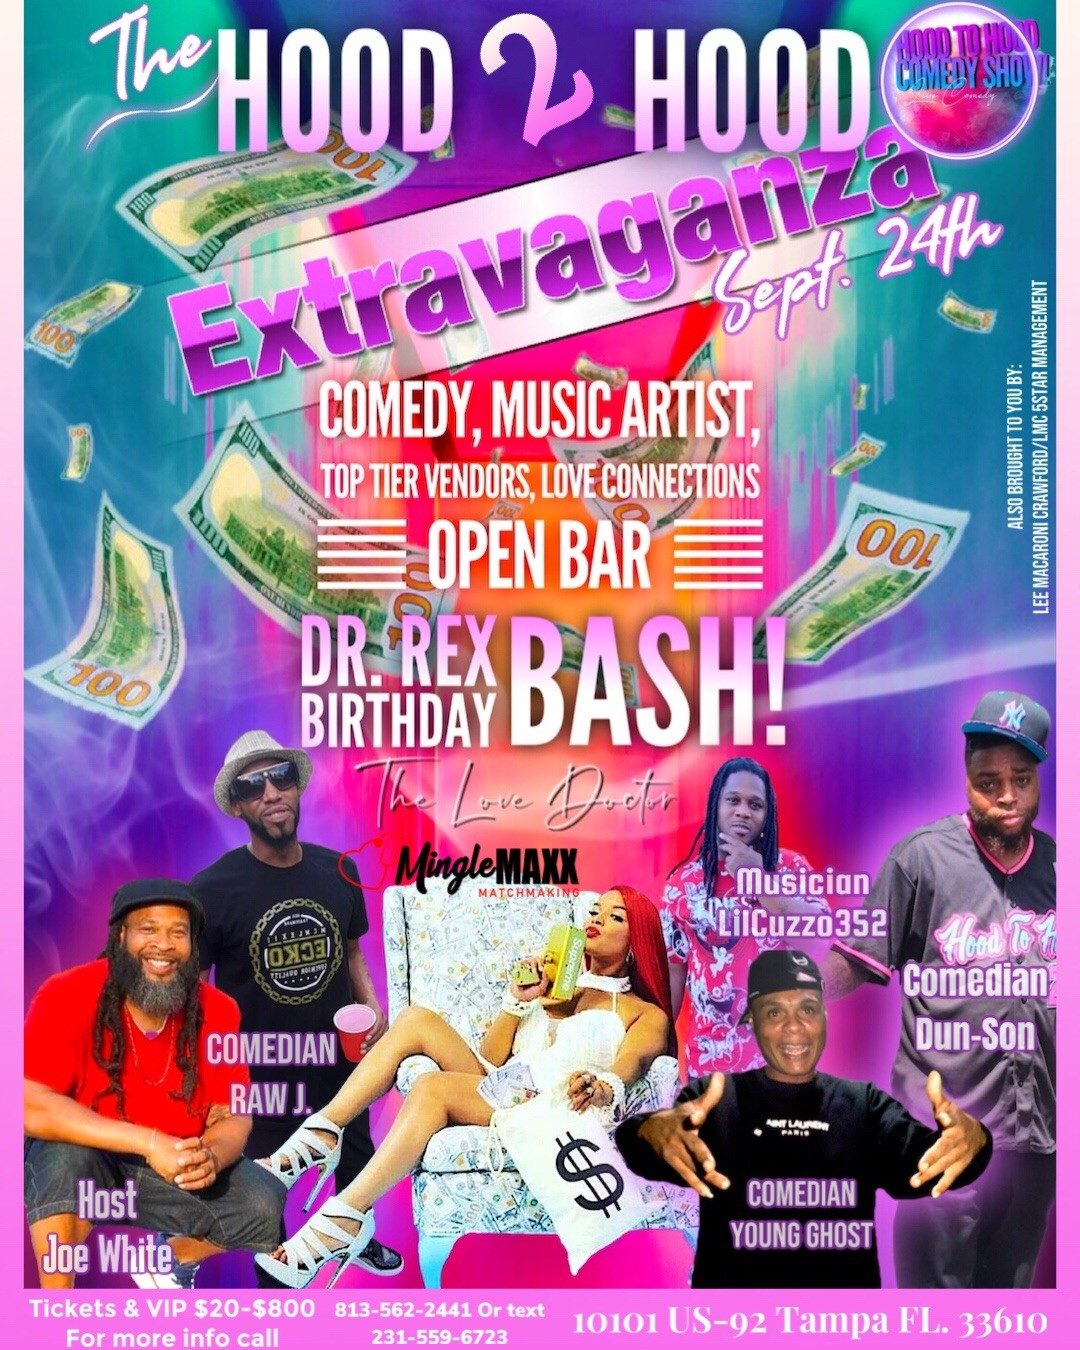 The Hood2Hood Extravaganza  on Sep 24, 18:30@10101 US-92, Tampa - Pick a seat, Buy tickets and Get information on LMC 5Star Management LLC.